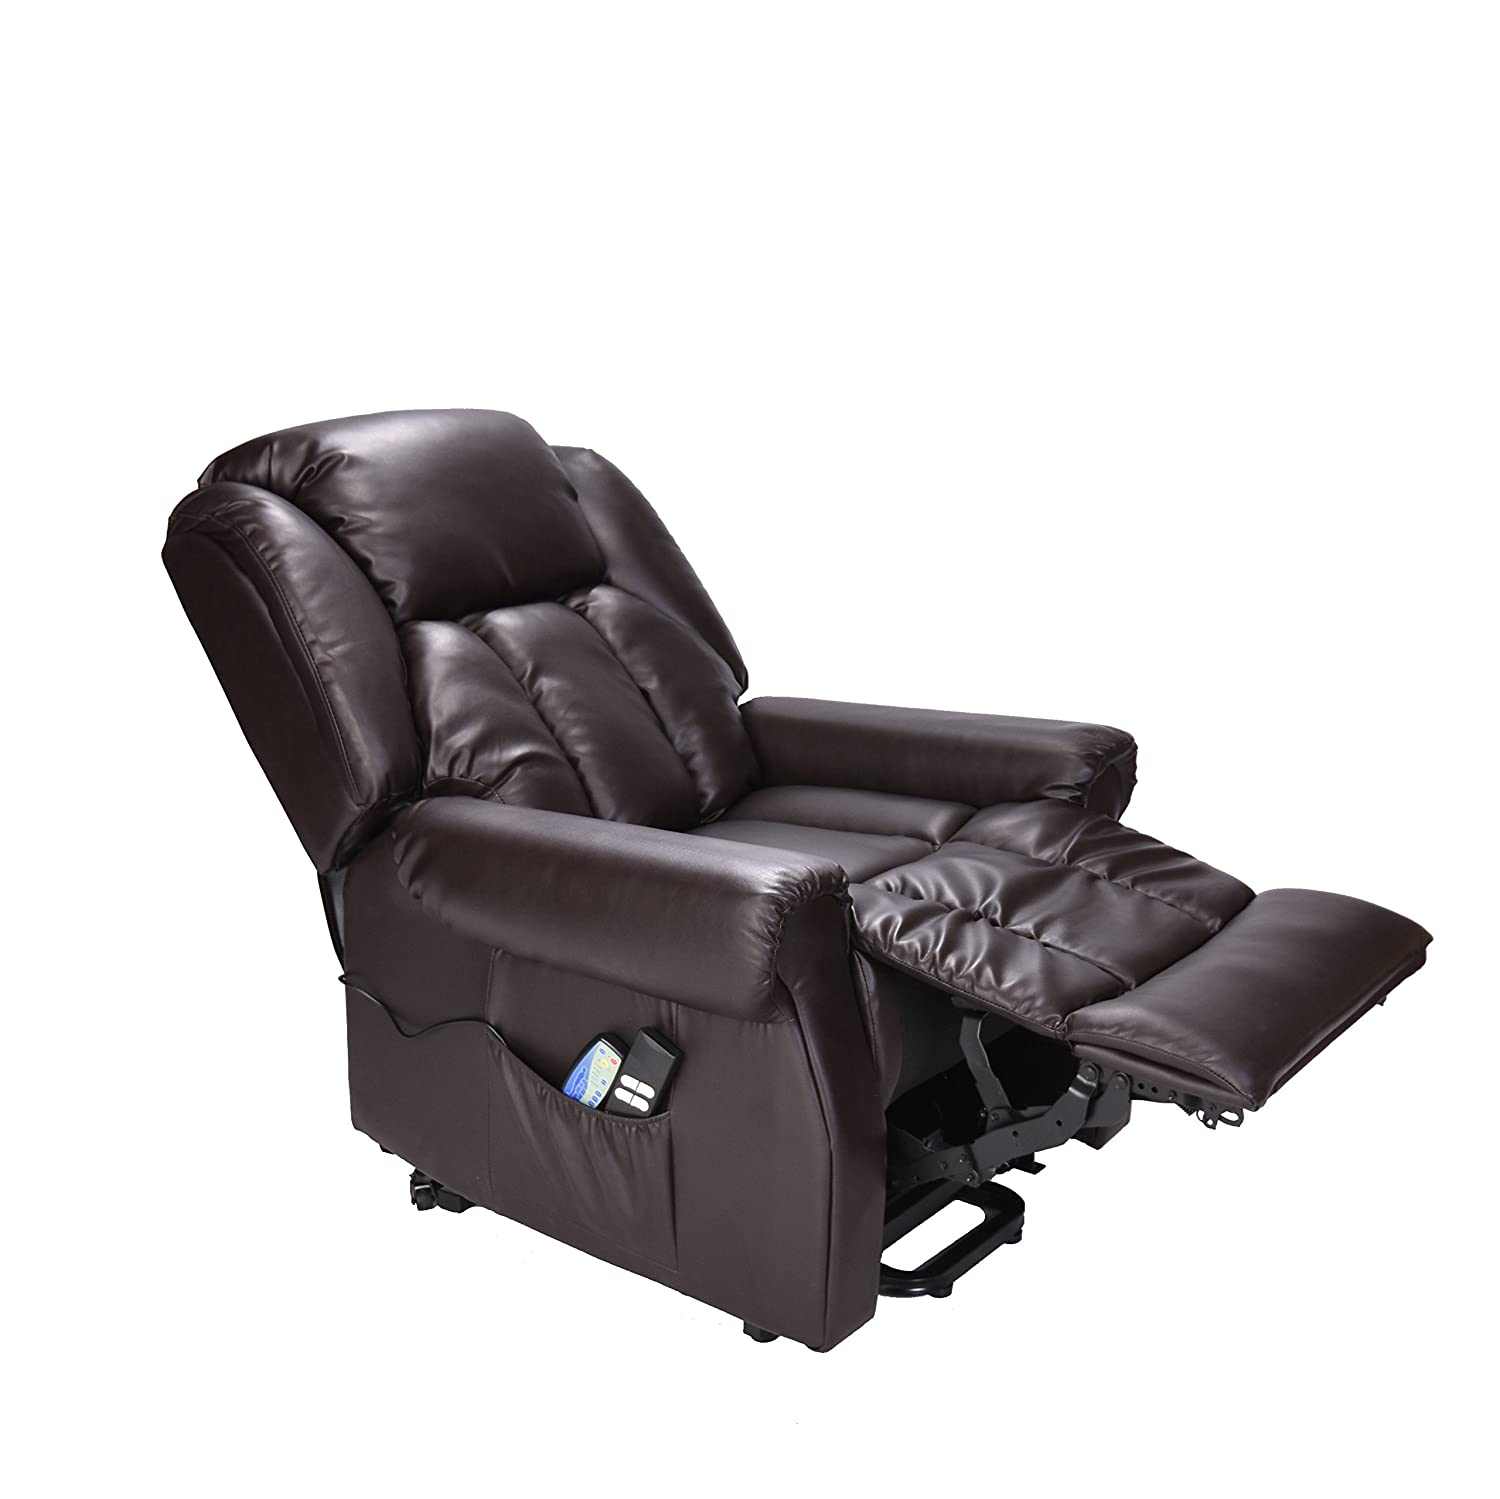 Hainworth Leather Dual Motor riser recliner chair with heat and